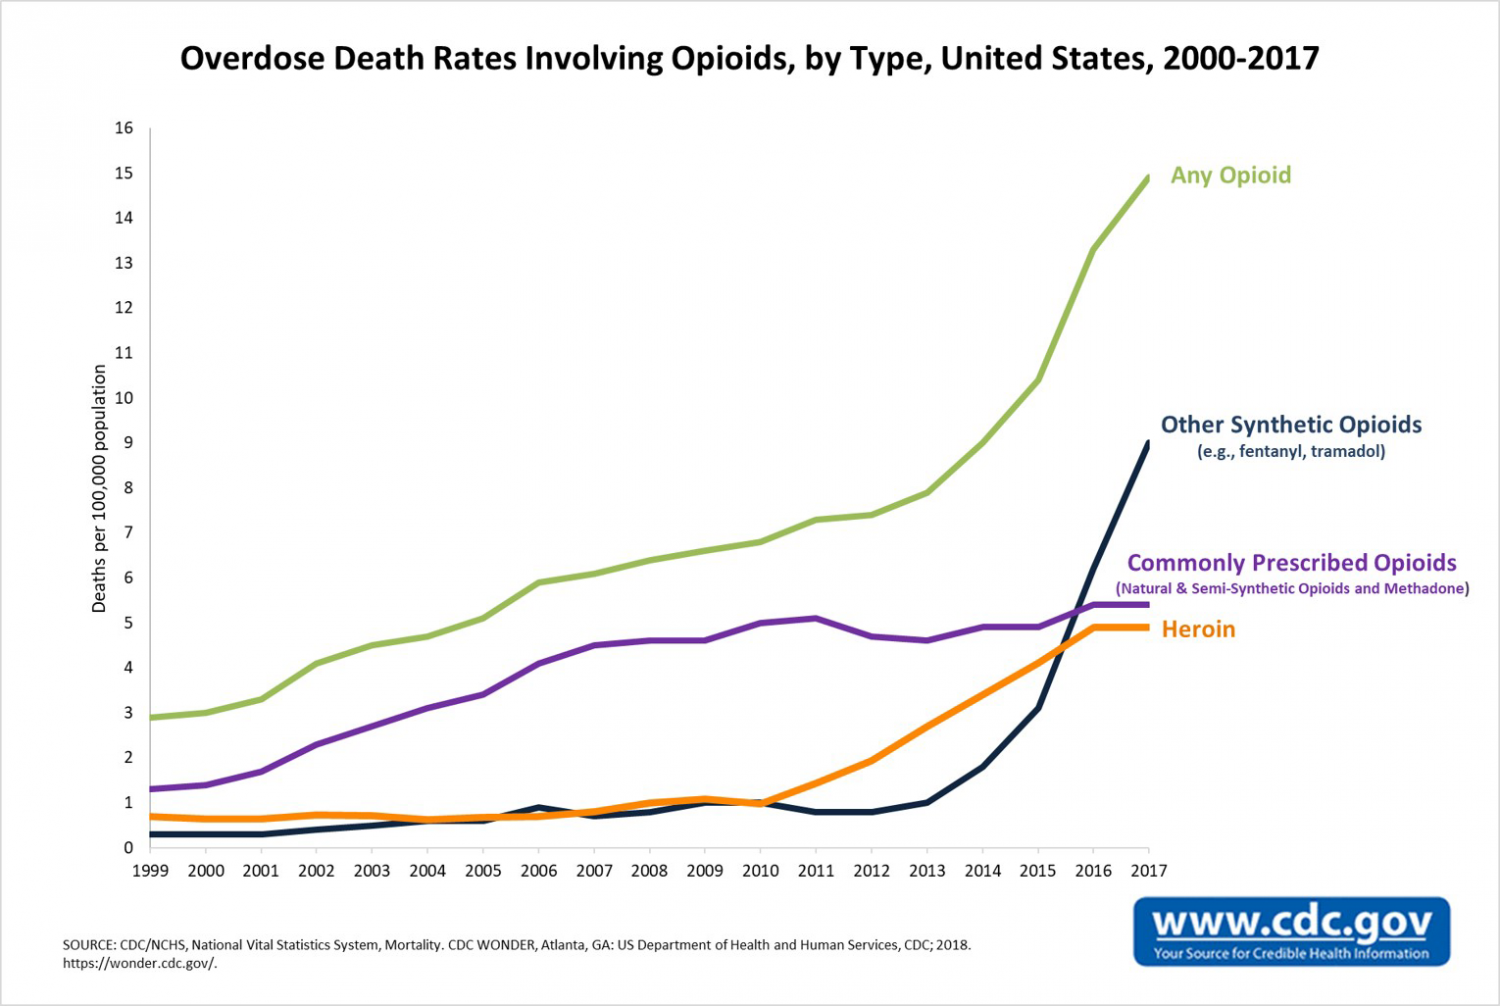 opioid death rate cdc 2000-2017